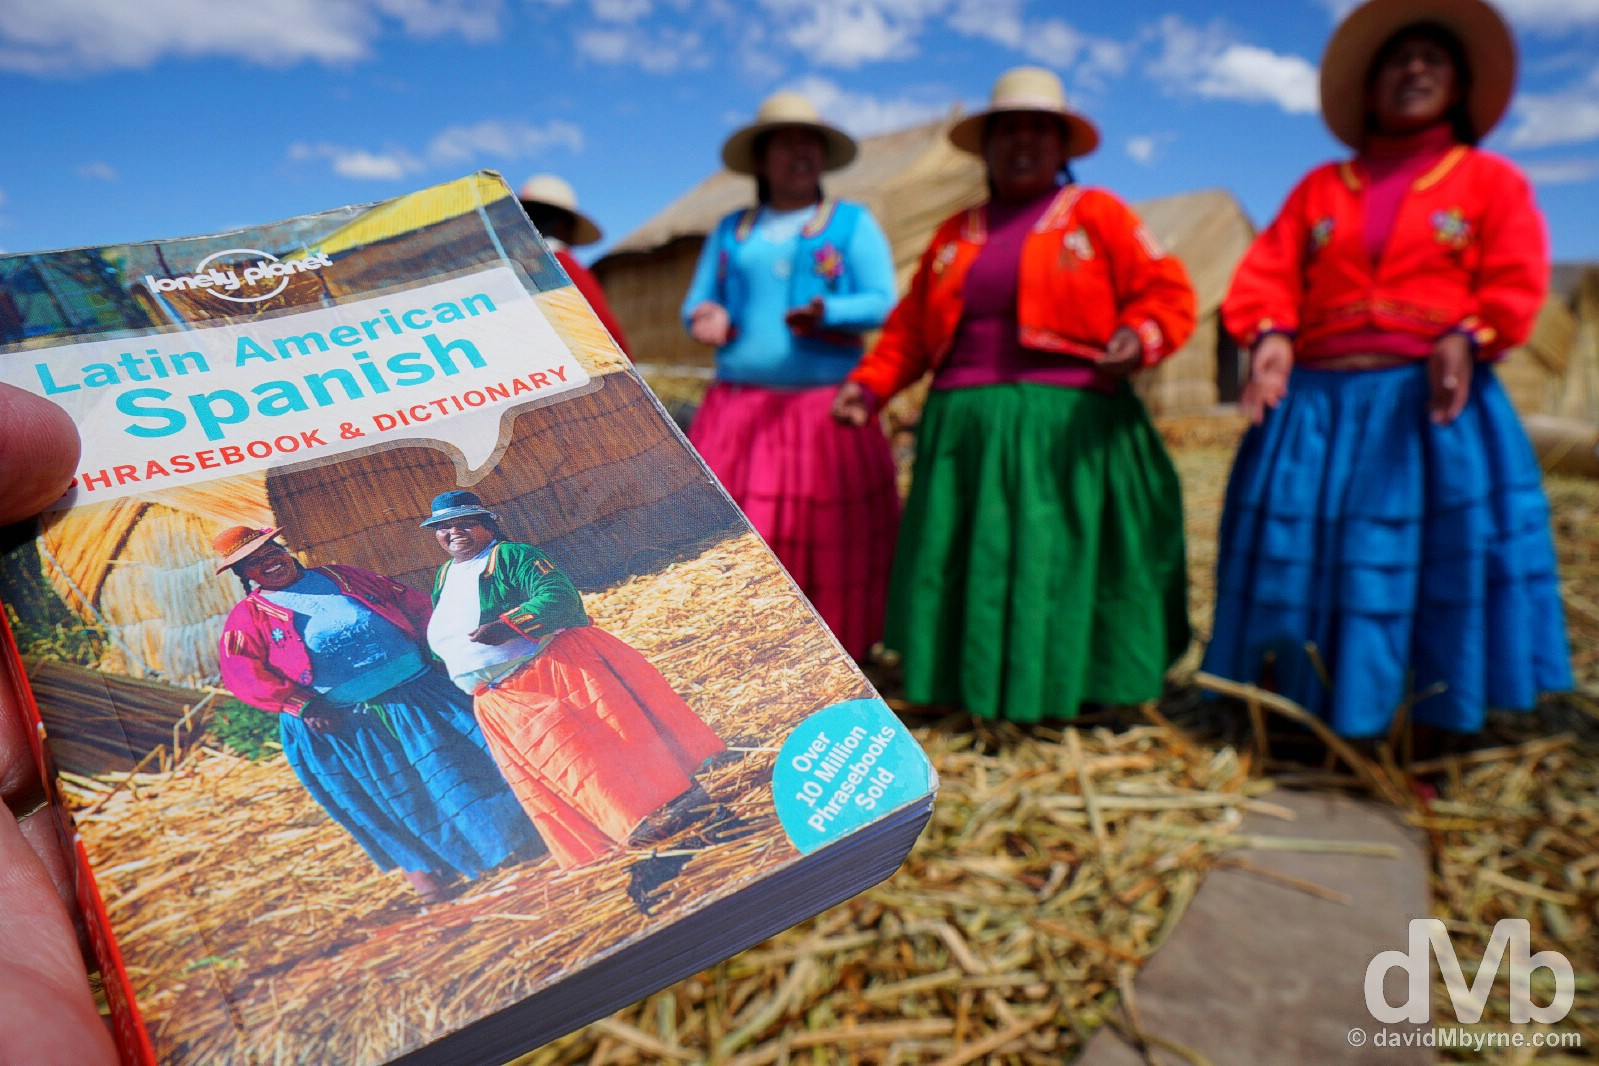 Looks familiar. Uros Islands, Lake Titicaca, Peru. August 19, 2015.